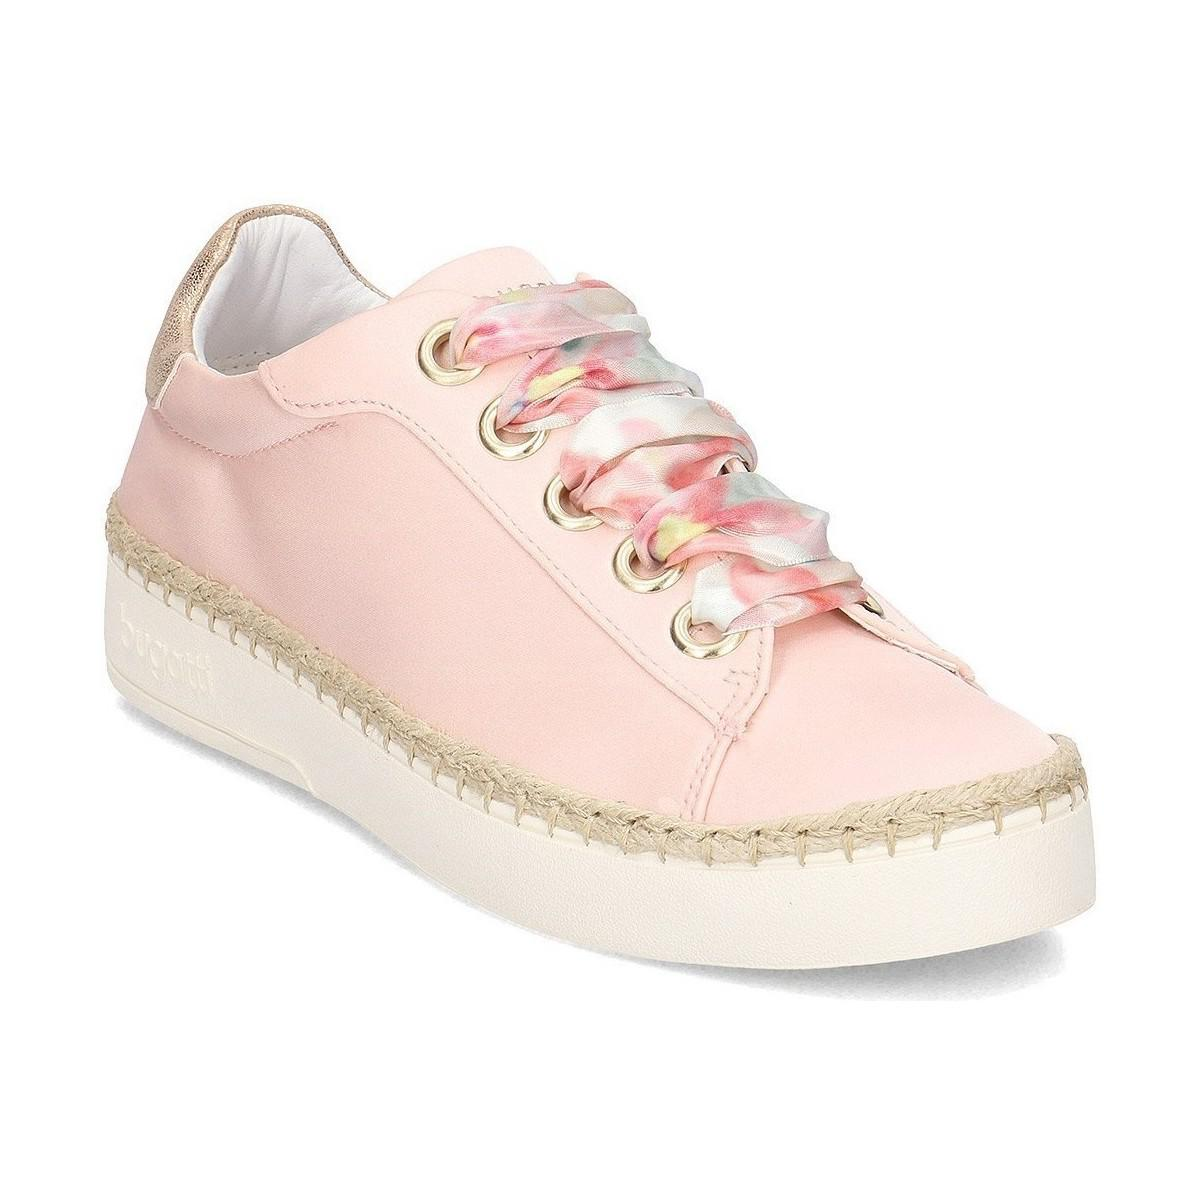 Bugatti 4214480369593481 Women s Shoes (trainers) In Pink in Pink - Lyst 0c53d0181e